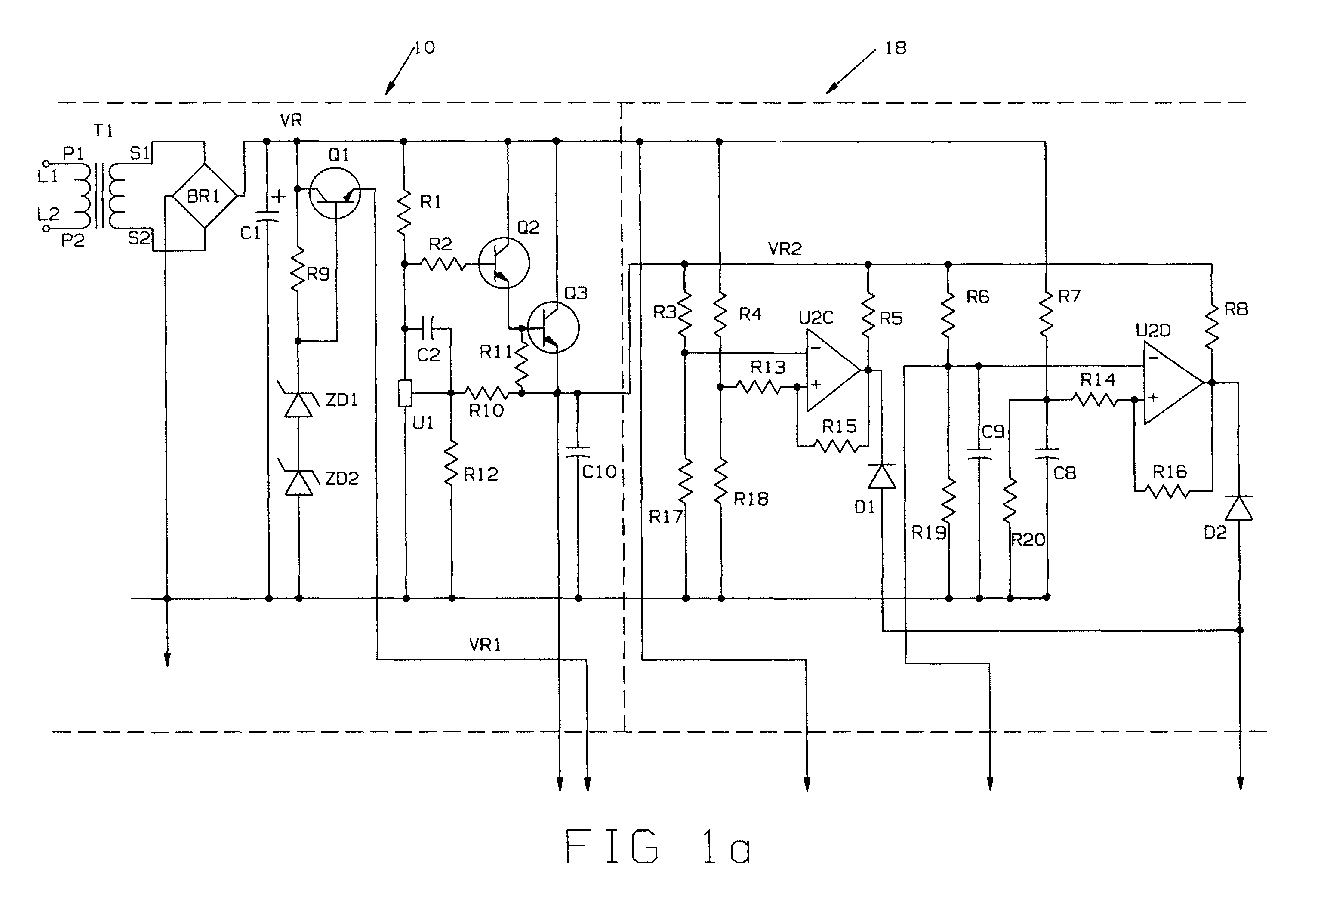 hight resolution of  second primary transformer windings tp1 tp2 from a parallel configuration when exposed to 120 vac to a series configuration when exposed to 240 vac